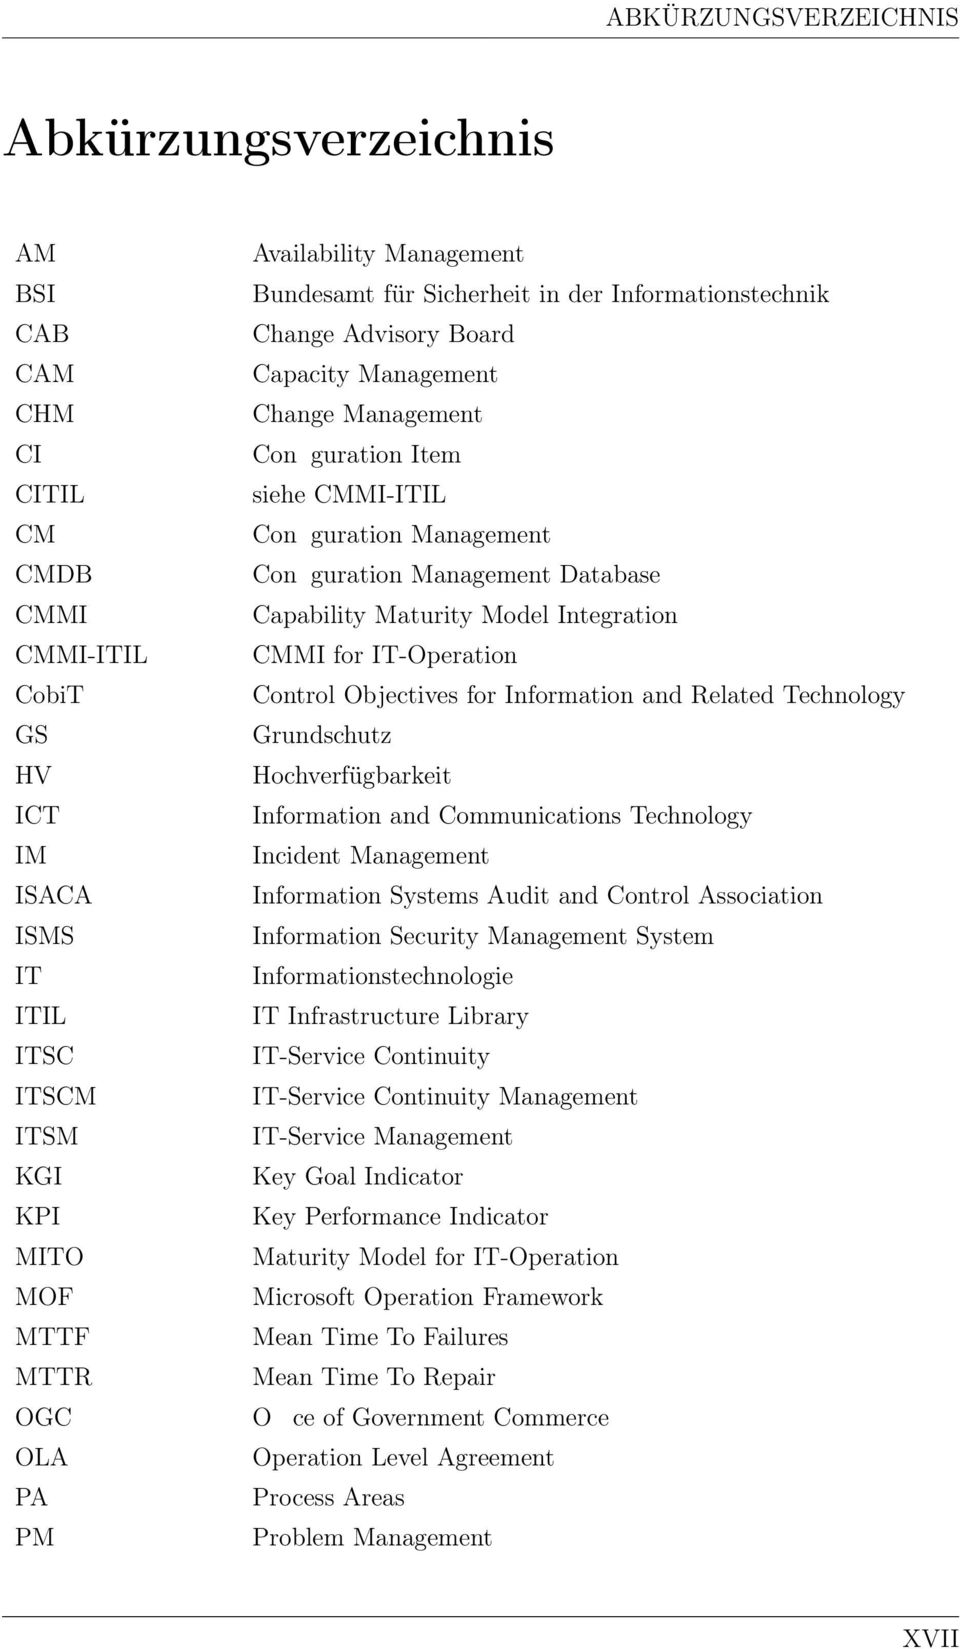 Conguration Management Database Capability Maturity Model Integration CMMI for IT-Operation Control Objectives for Information and Related Technology Grundschutz Hochverfügbarkeit Information and